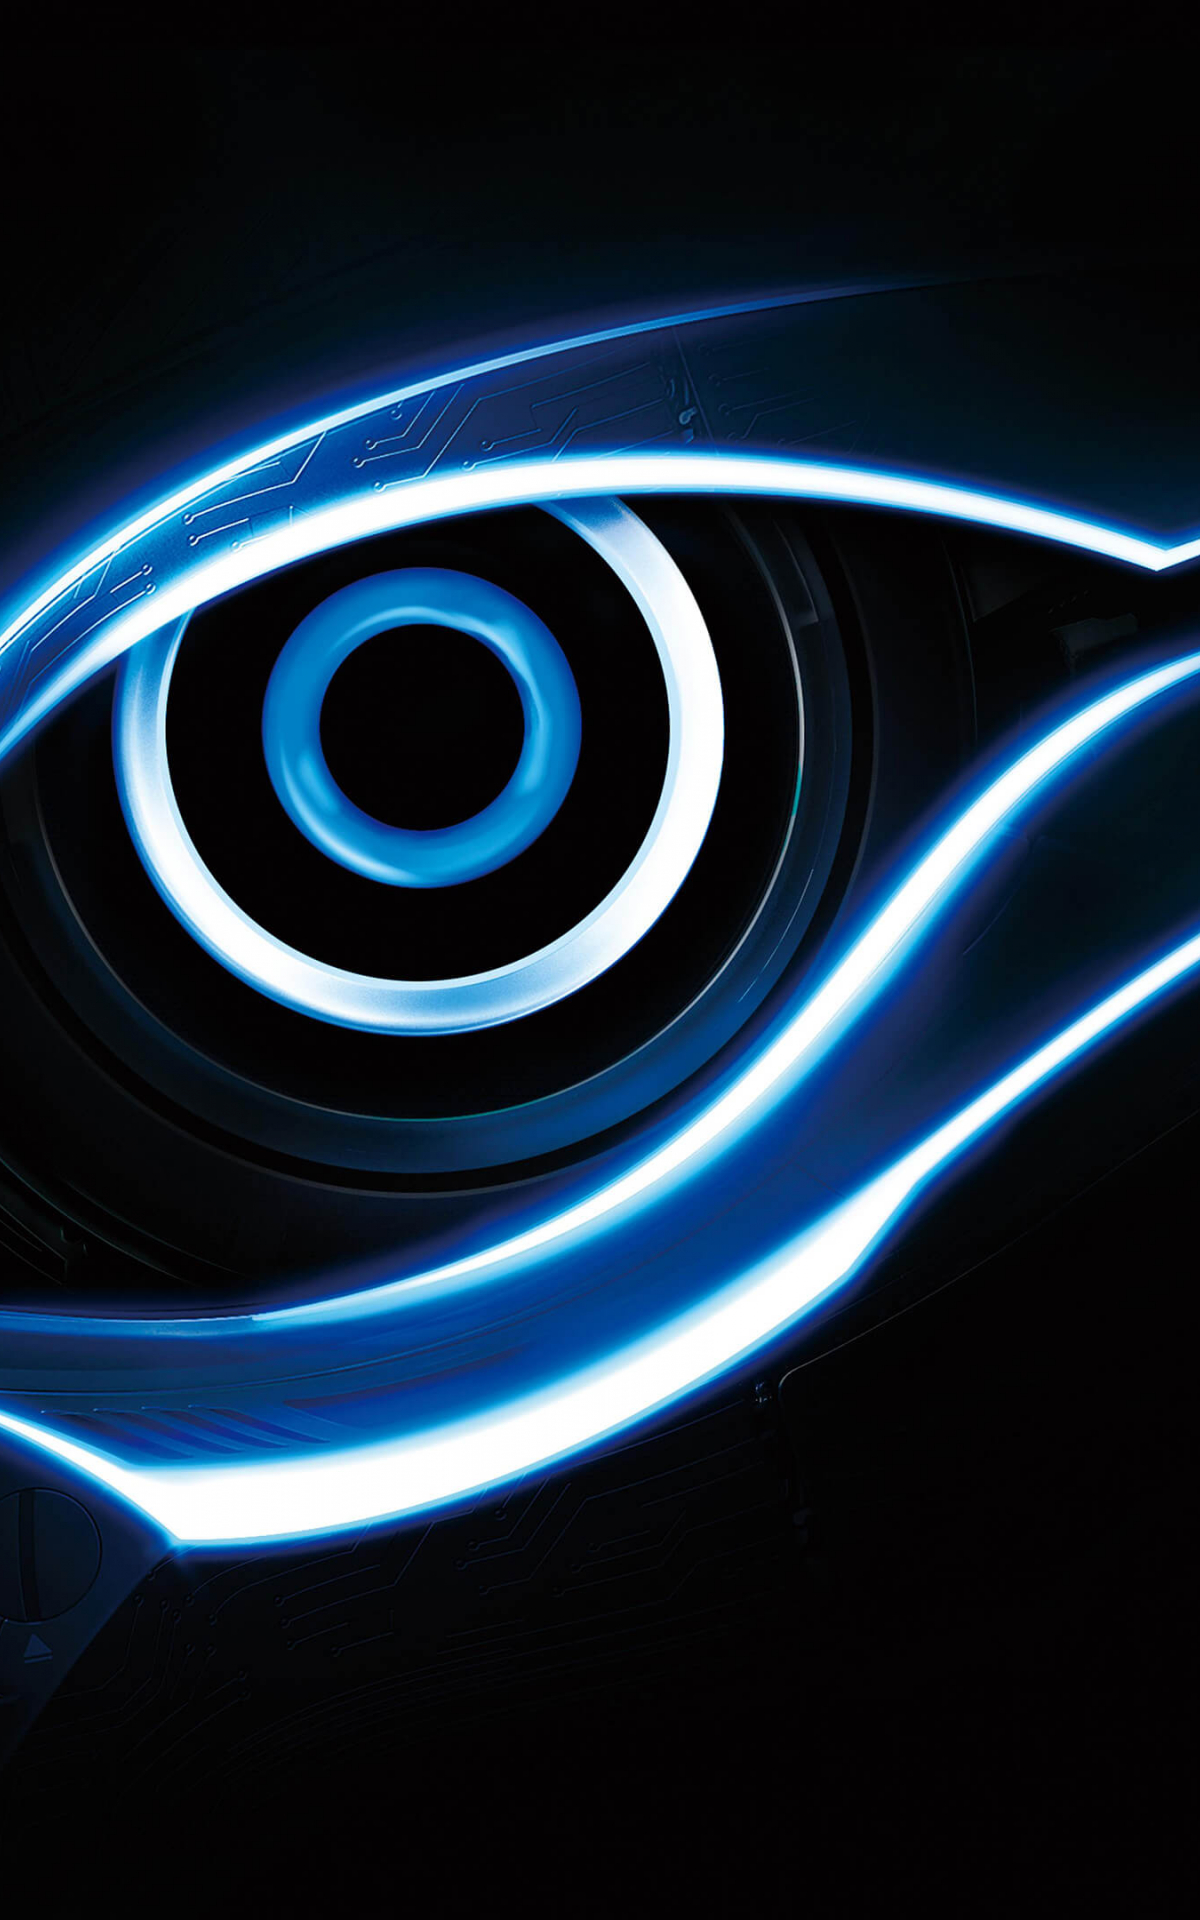 Free Download Blue Gigabyte Eye Logo 4k Wallpaper 3840x2160